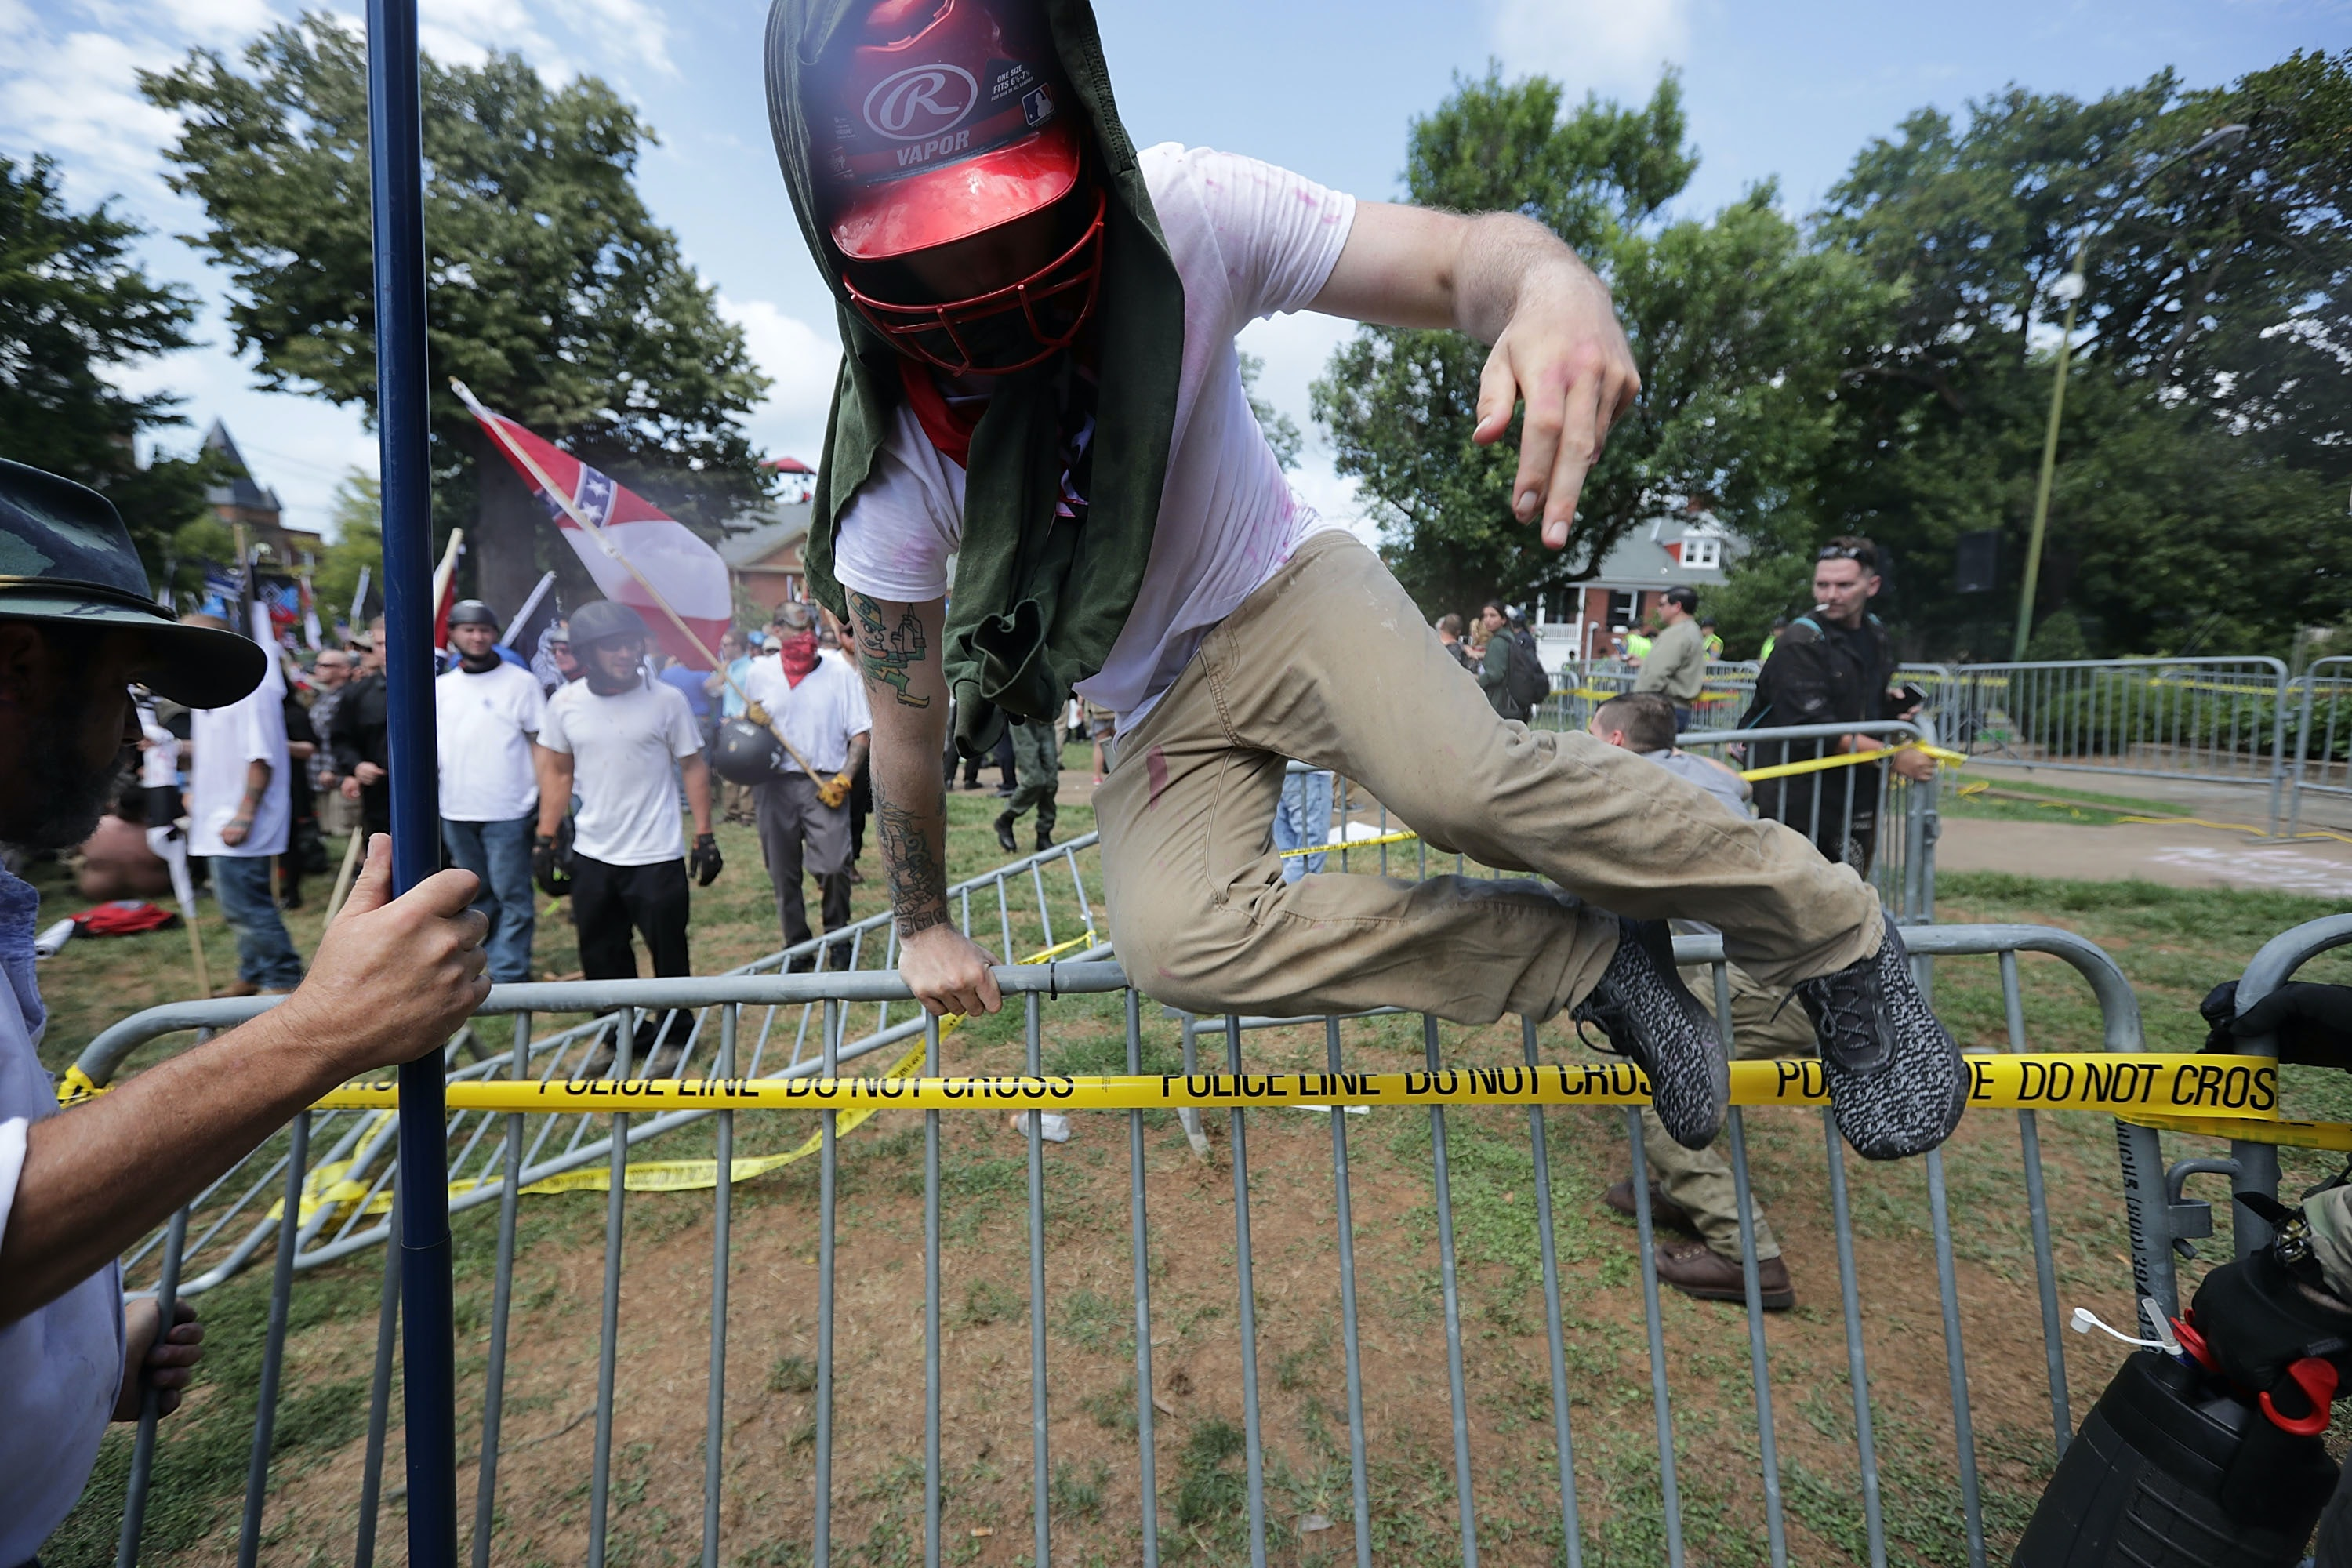 Dead, 20 injured after supremacist march in Virginia